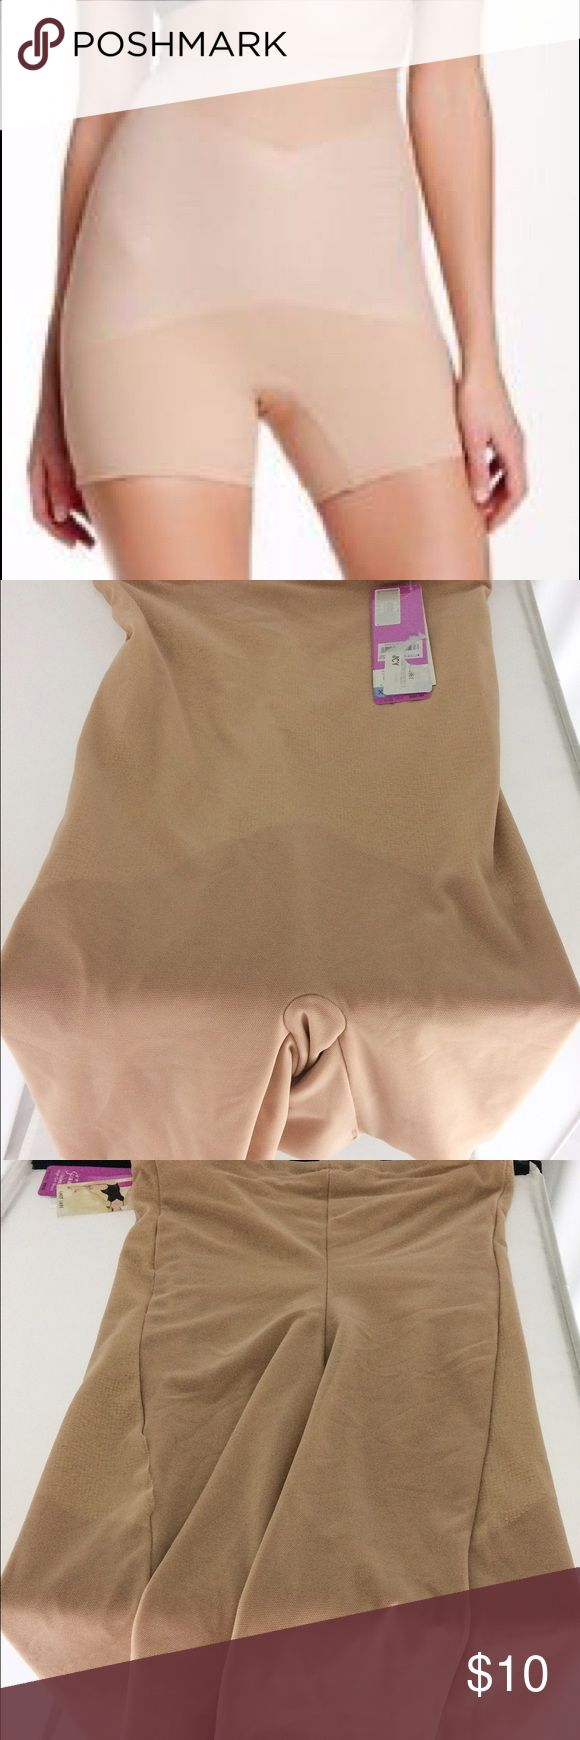 Spanx Star Power Super High Girl Short XL This item is brand new, never worn.  Has a small tear on the right side (see image 4).  No stains or tears.  Item was pulled from a major department store to make room for other items. SPANX Intimates & Sleepwear Shapewear